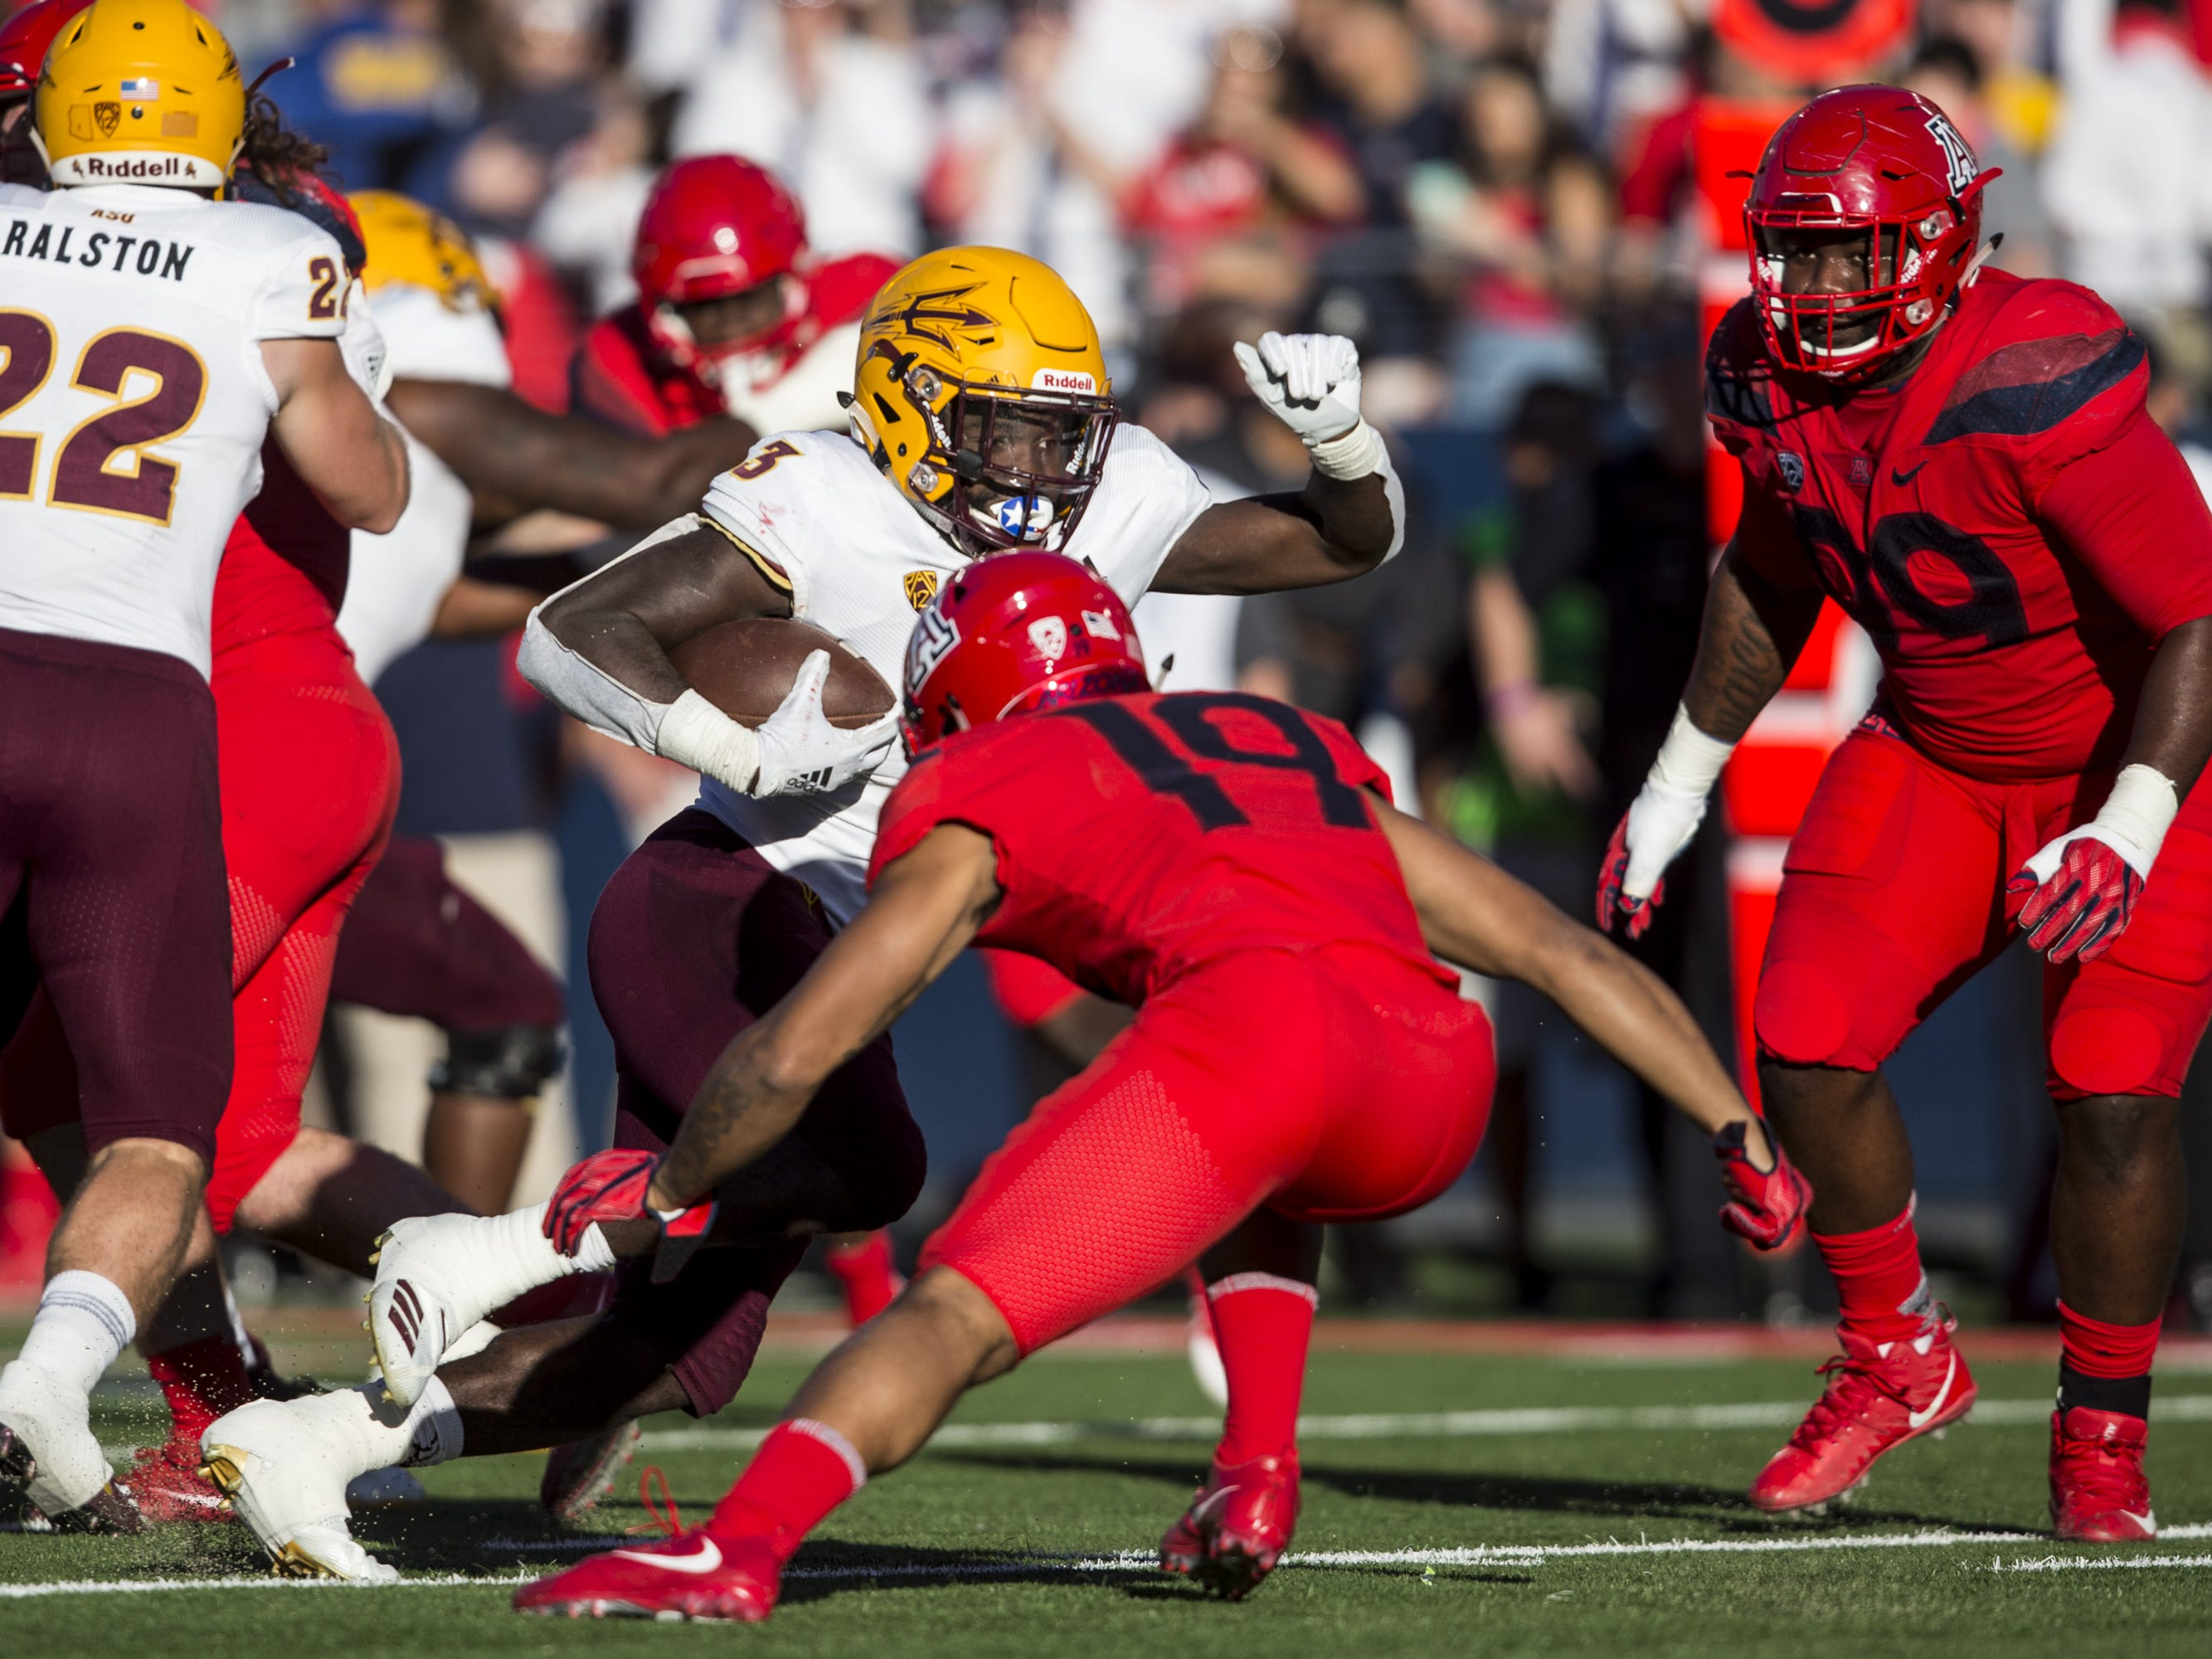 Arizona State's Eno Benjamin rushes for a touchdown against Arizona during the second half of the Territorial Cup on Saturday, Nov. 24, 2018, at Arizona Stadium in Tucson, Ariz. Arizona State won, 41-40.